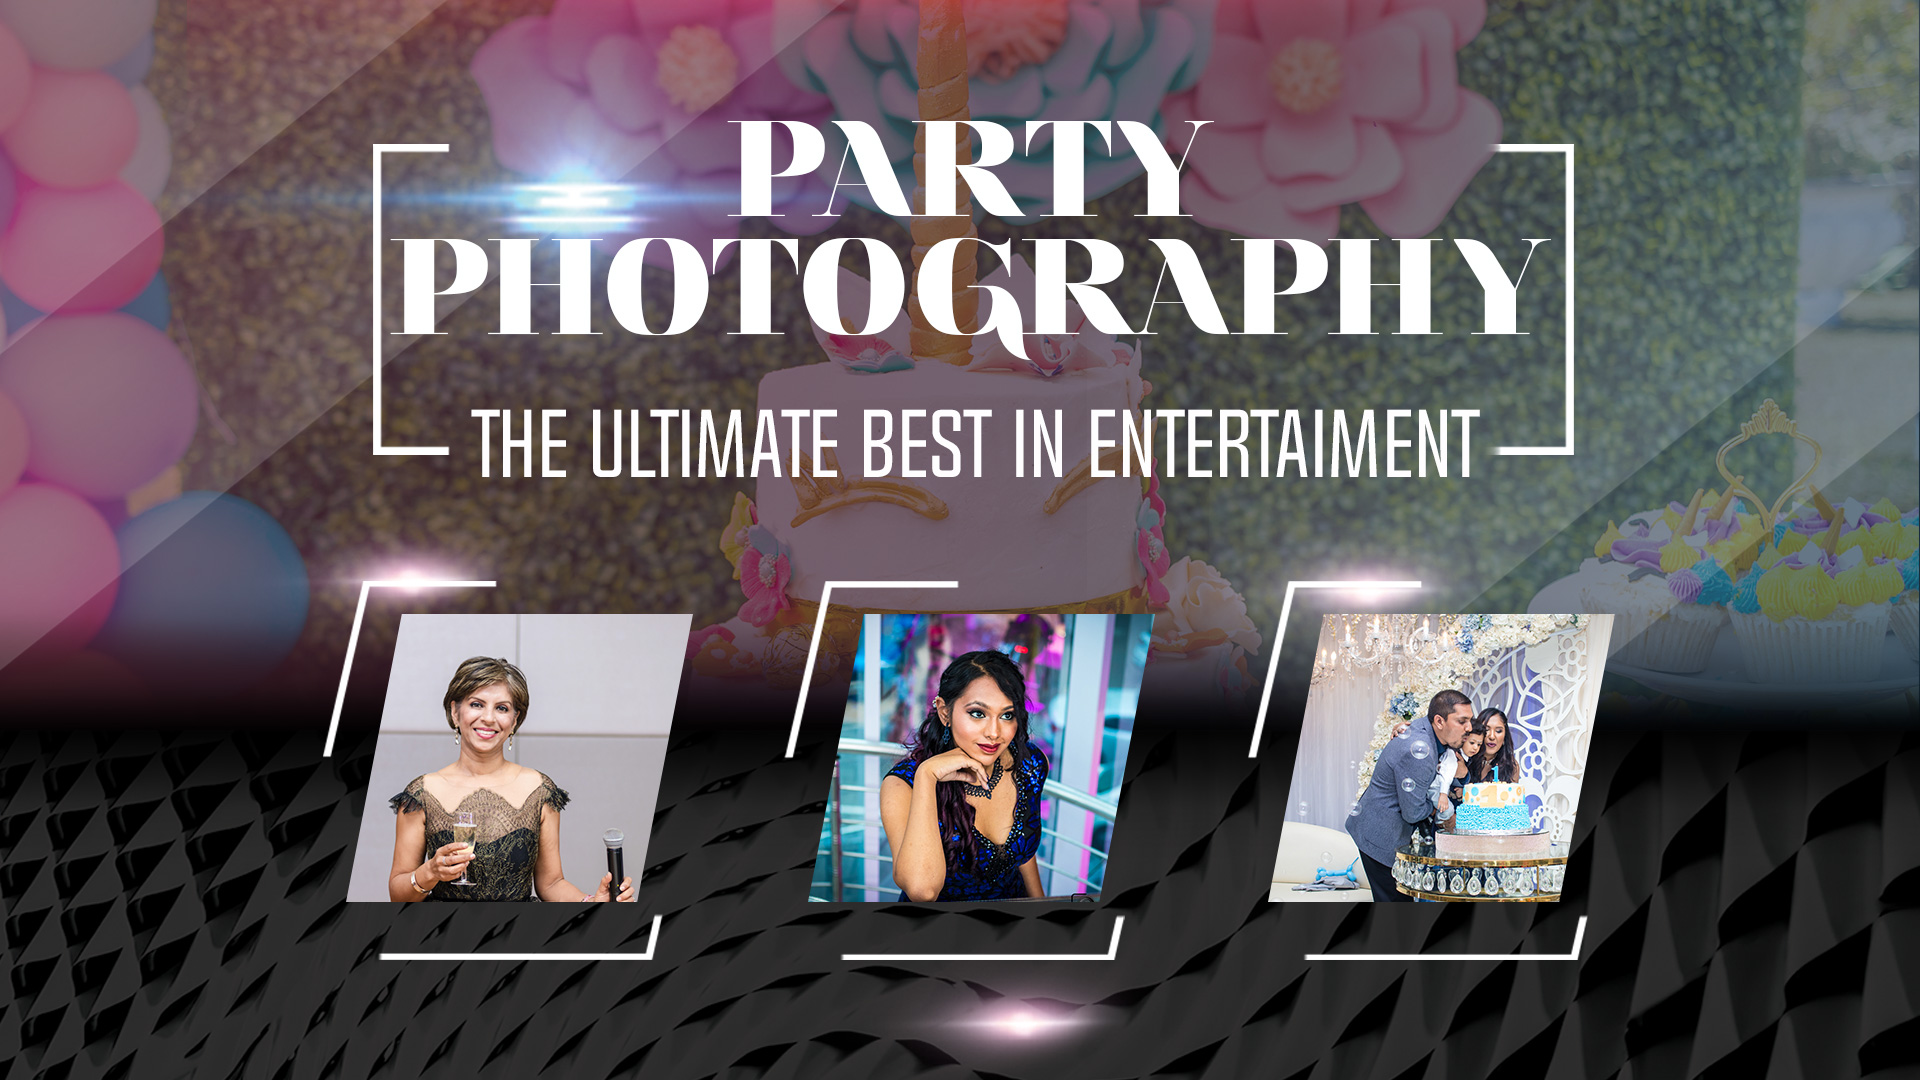 Party Photography